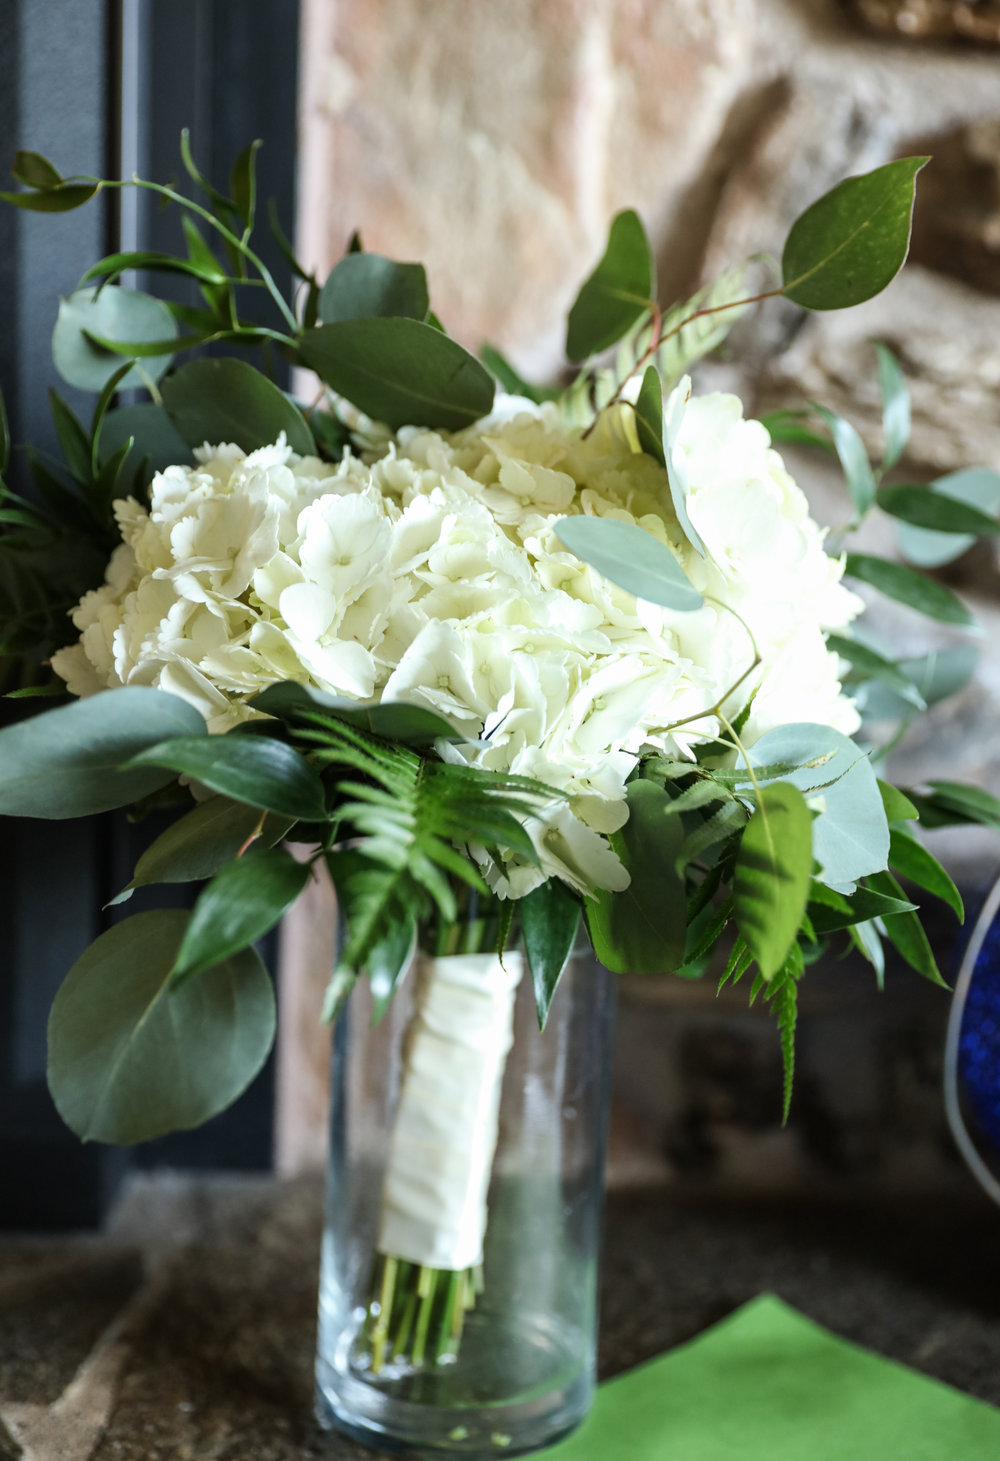 Sublime Stems | Photos by Kintz  |  Kiana Lodge